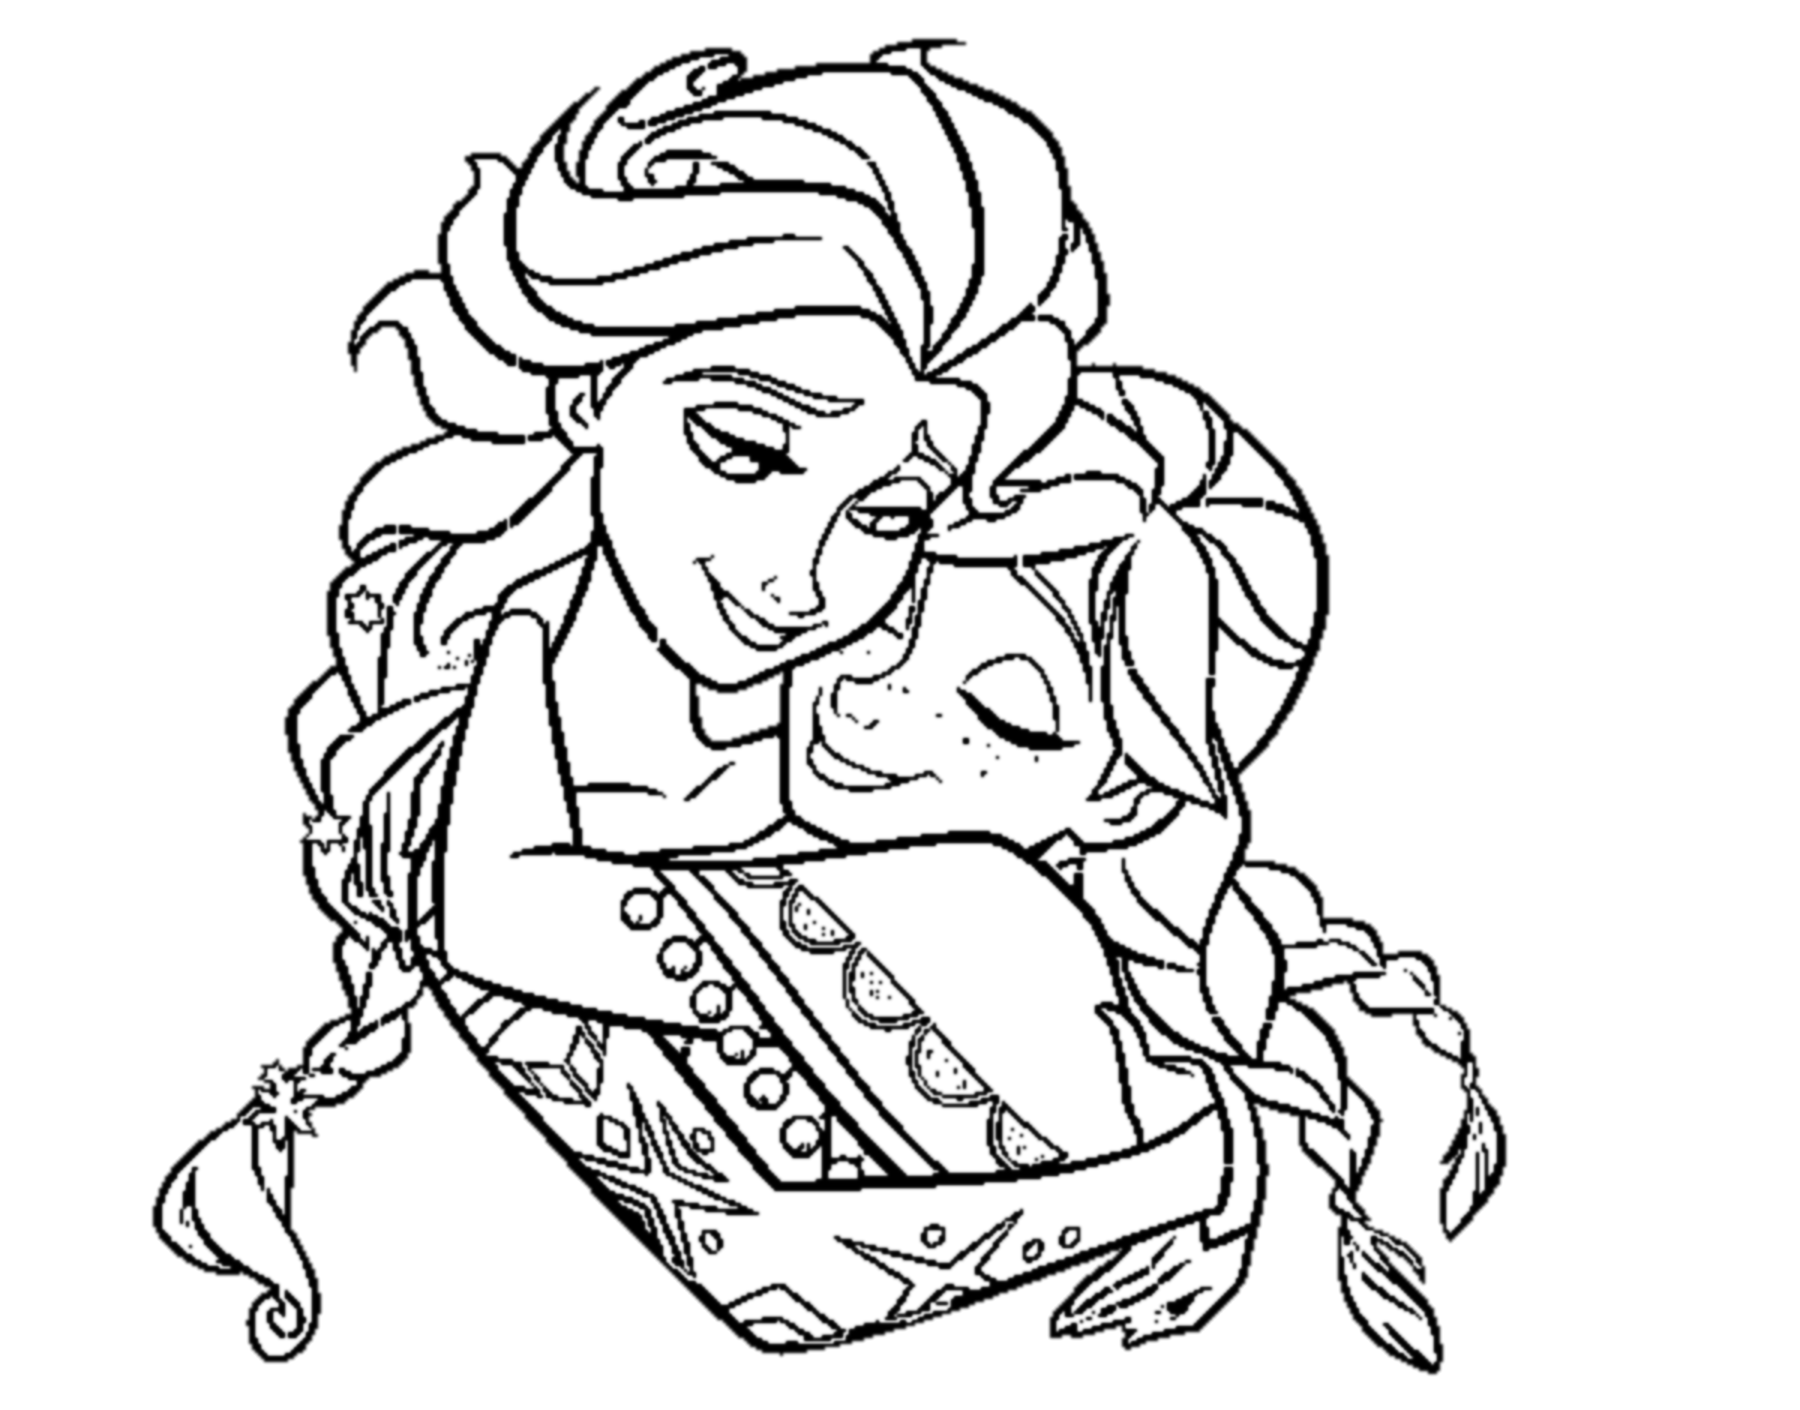 Frozen for kids - Frozen - Coloring pages for kids